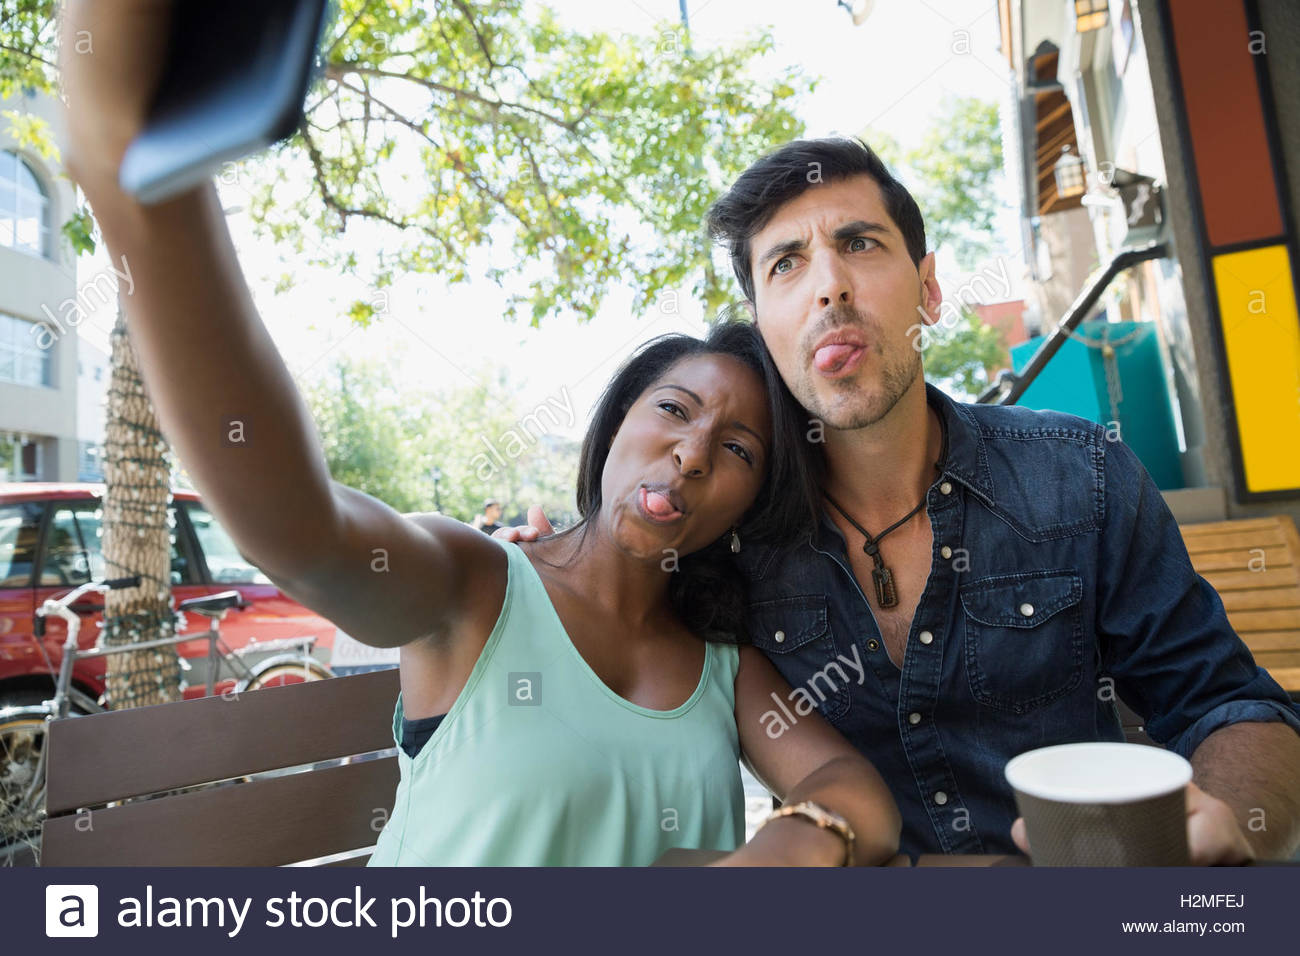 Playful couple making silly faces and taking selfie with camera phone at sidewalk cafe - Stock Image